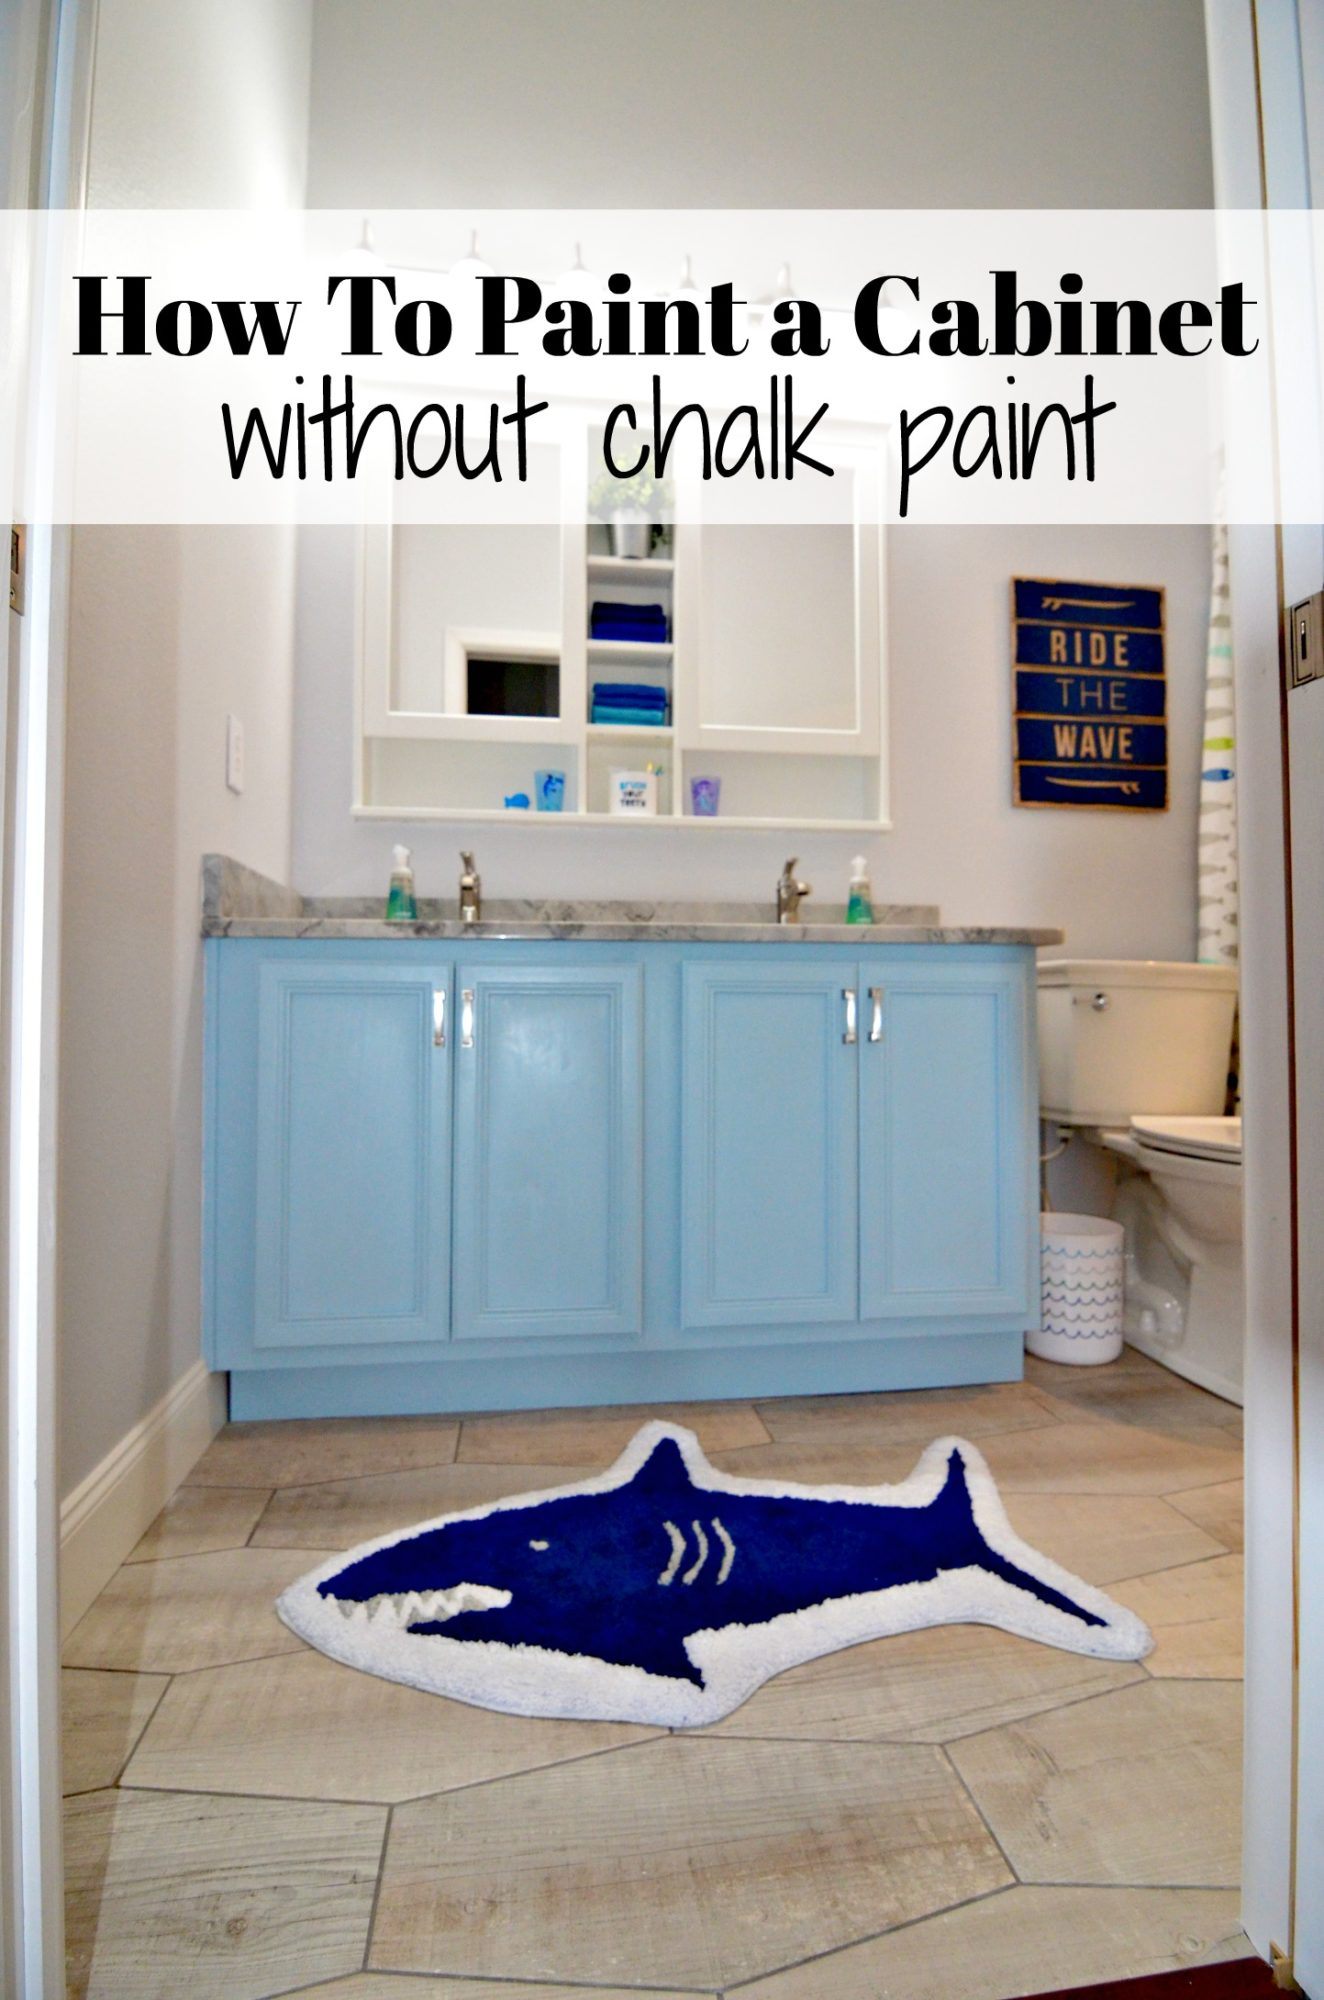 How To Paint a Cabinet without chalk paint